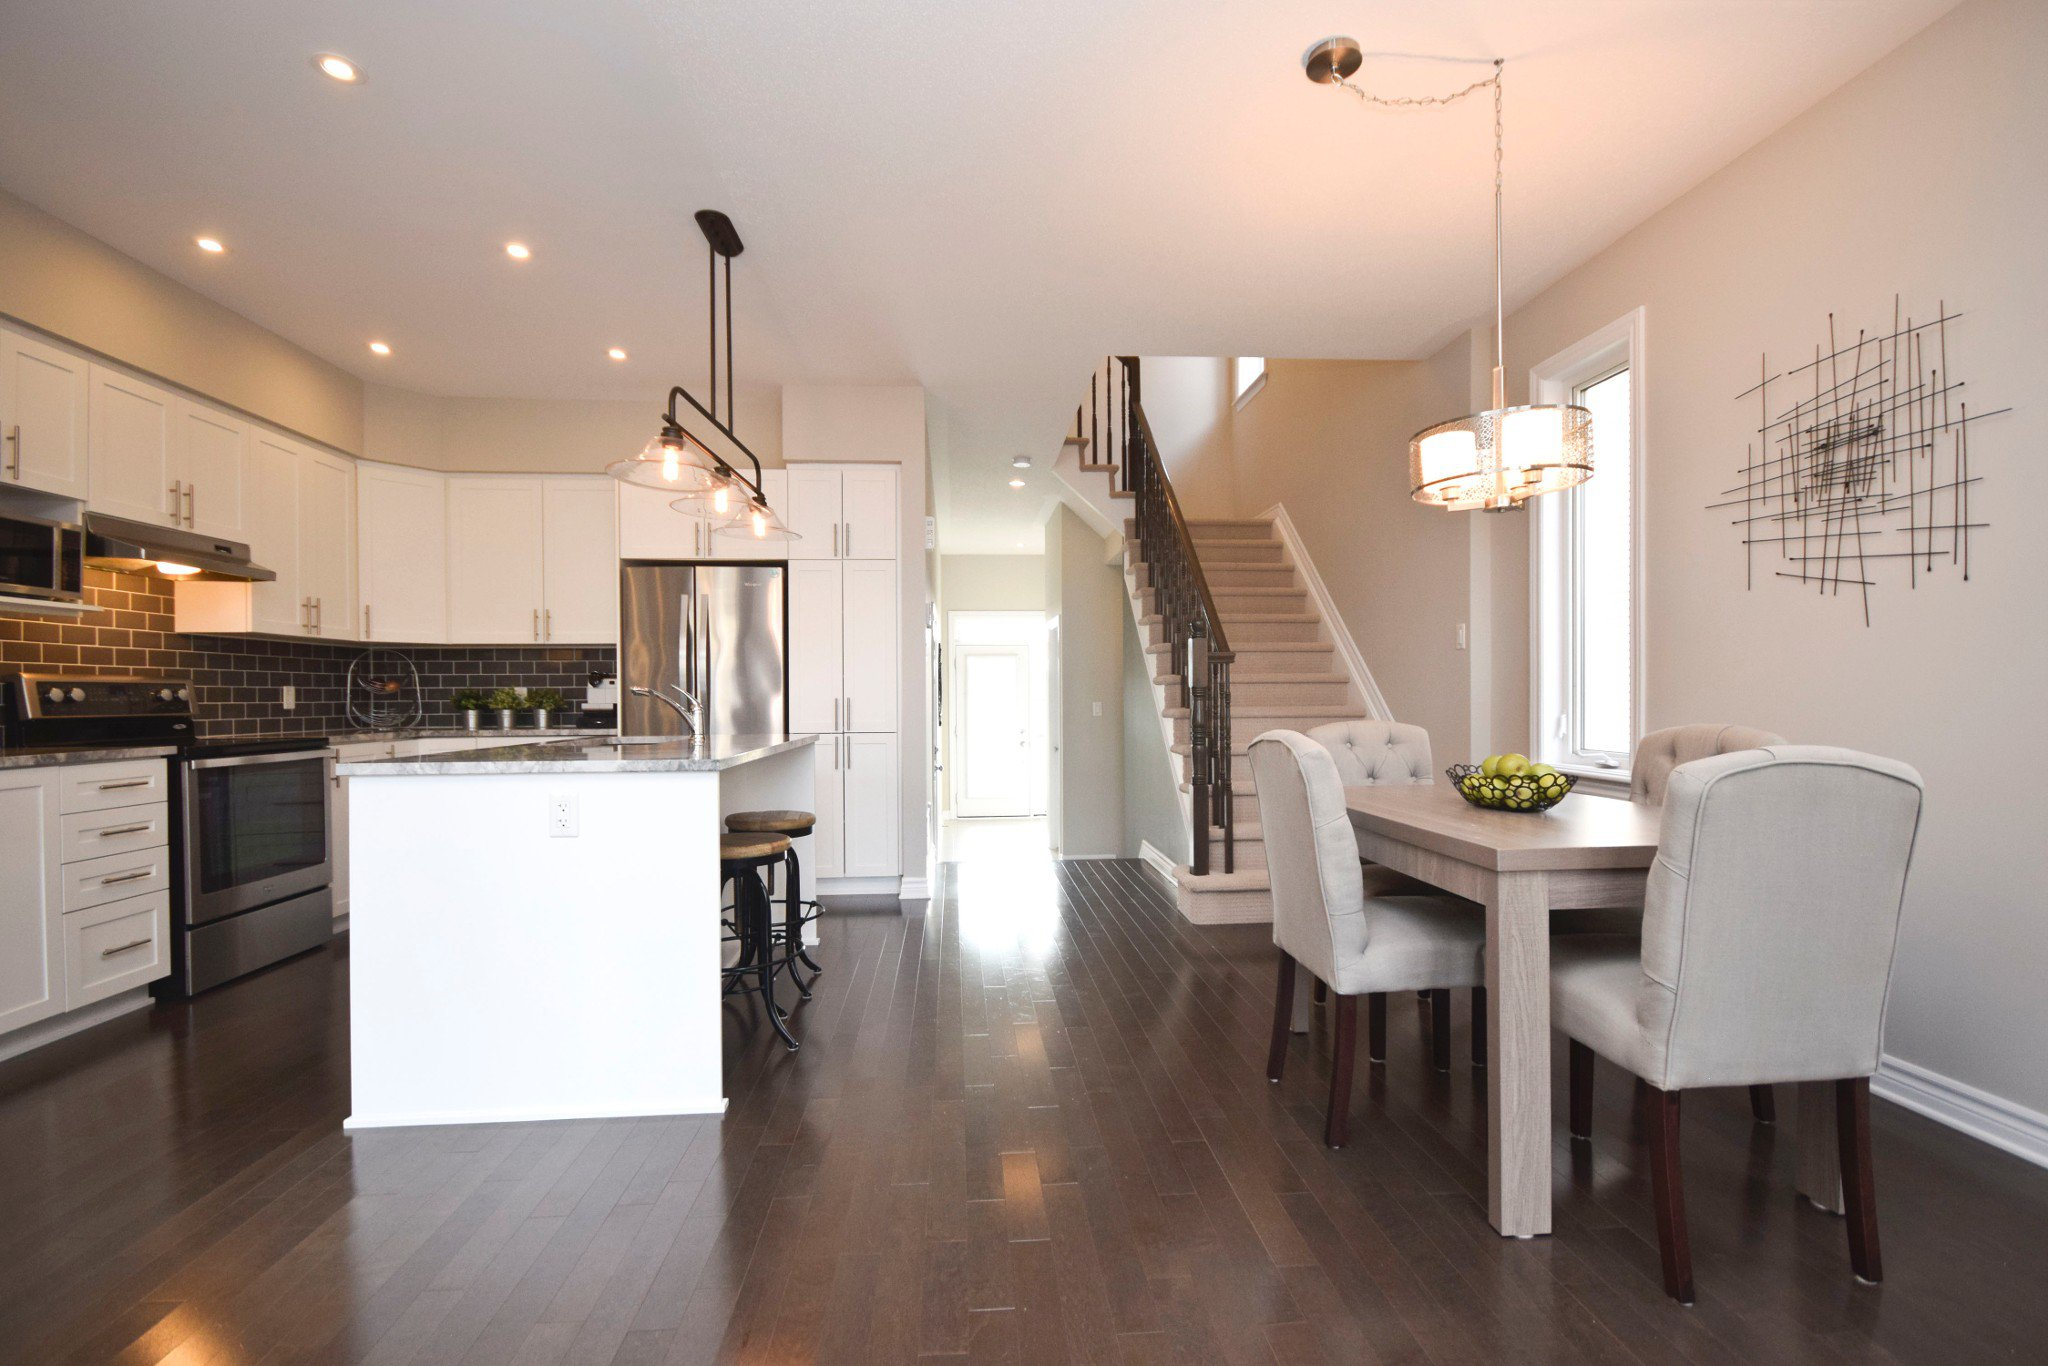 Photo 15: Photos: 131 Popplewell Crescent in Ottawa: Cedargrove / Fraserdale House for sale (Barrhaven)  : MLS®# 1130335